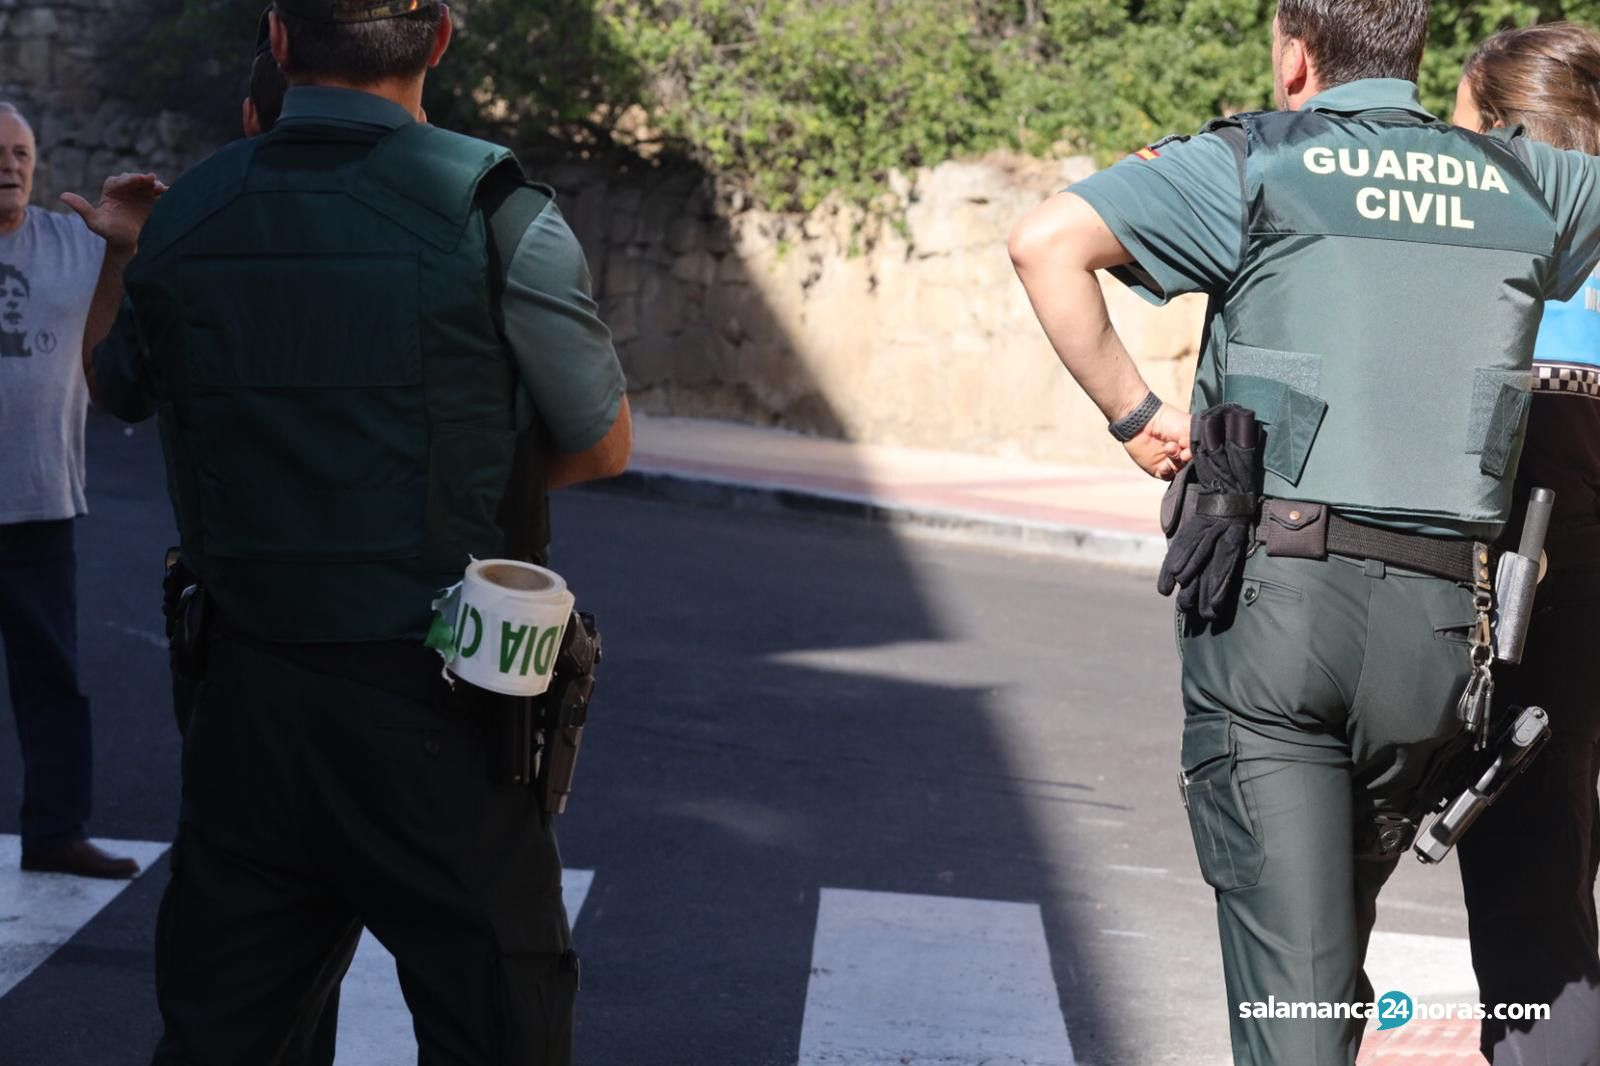 Movilización de la Guardia Civil por una trifulca con amenazas graves en Villamayor